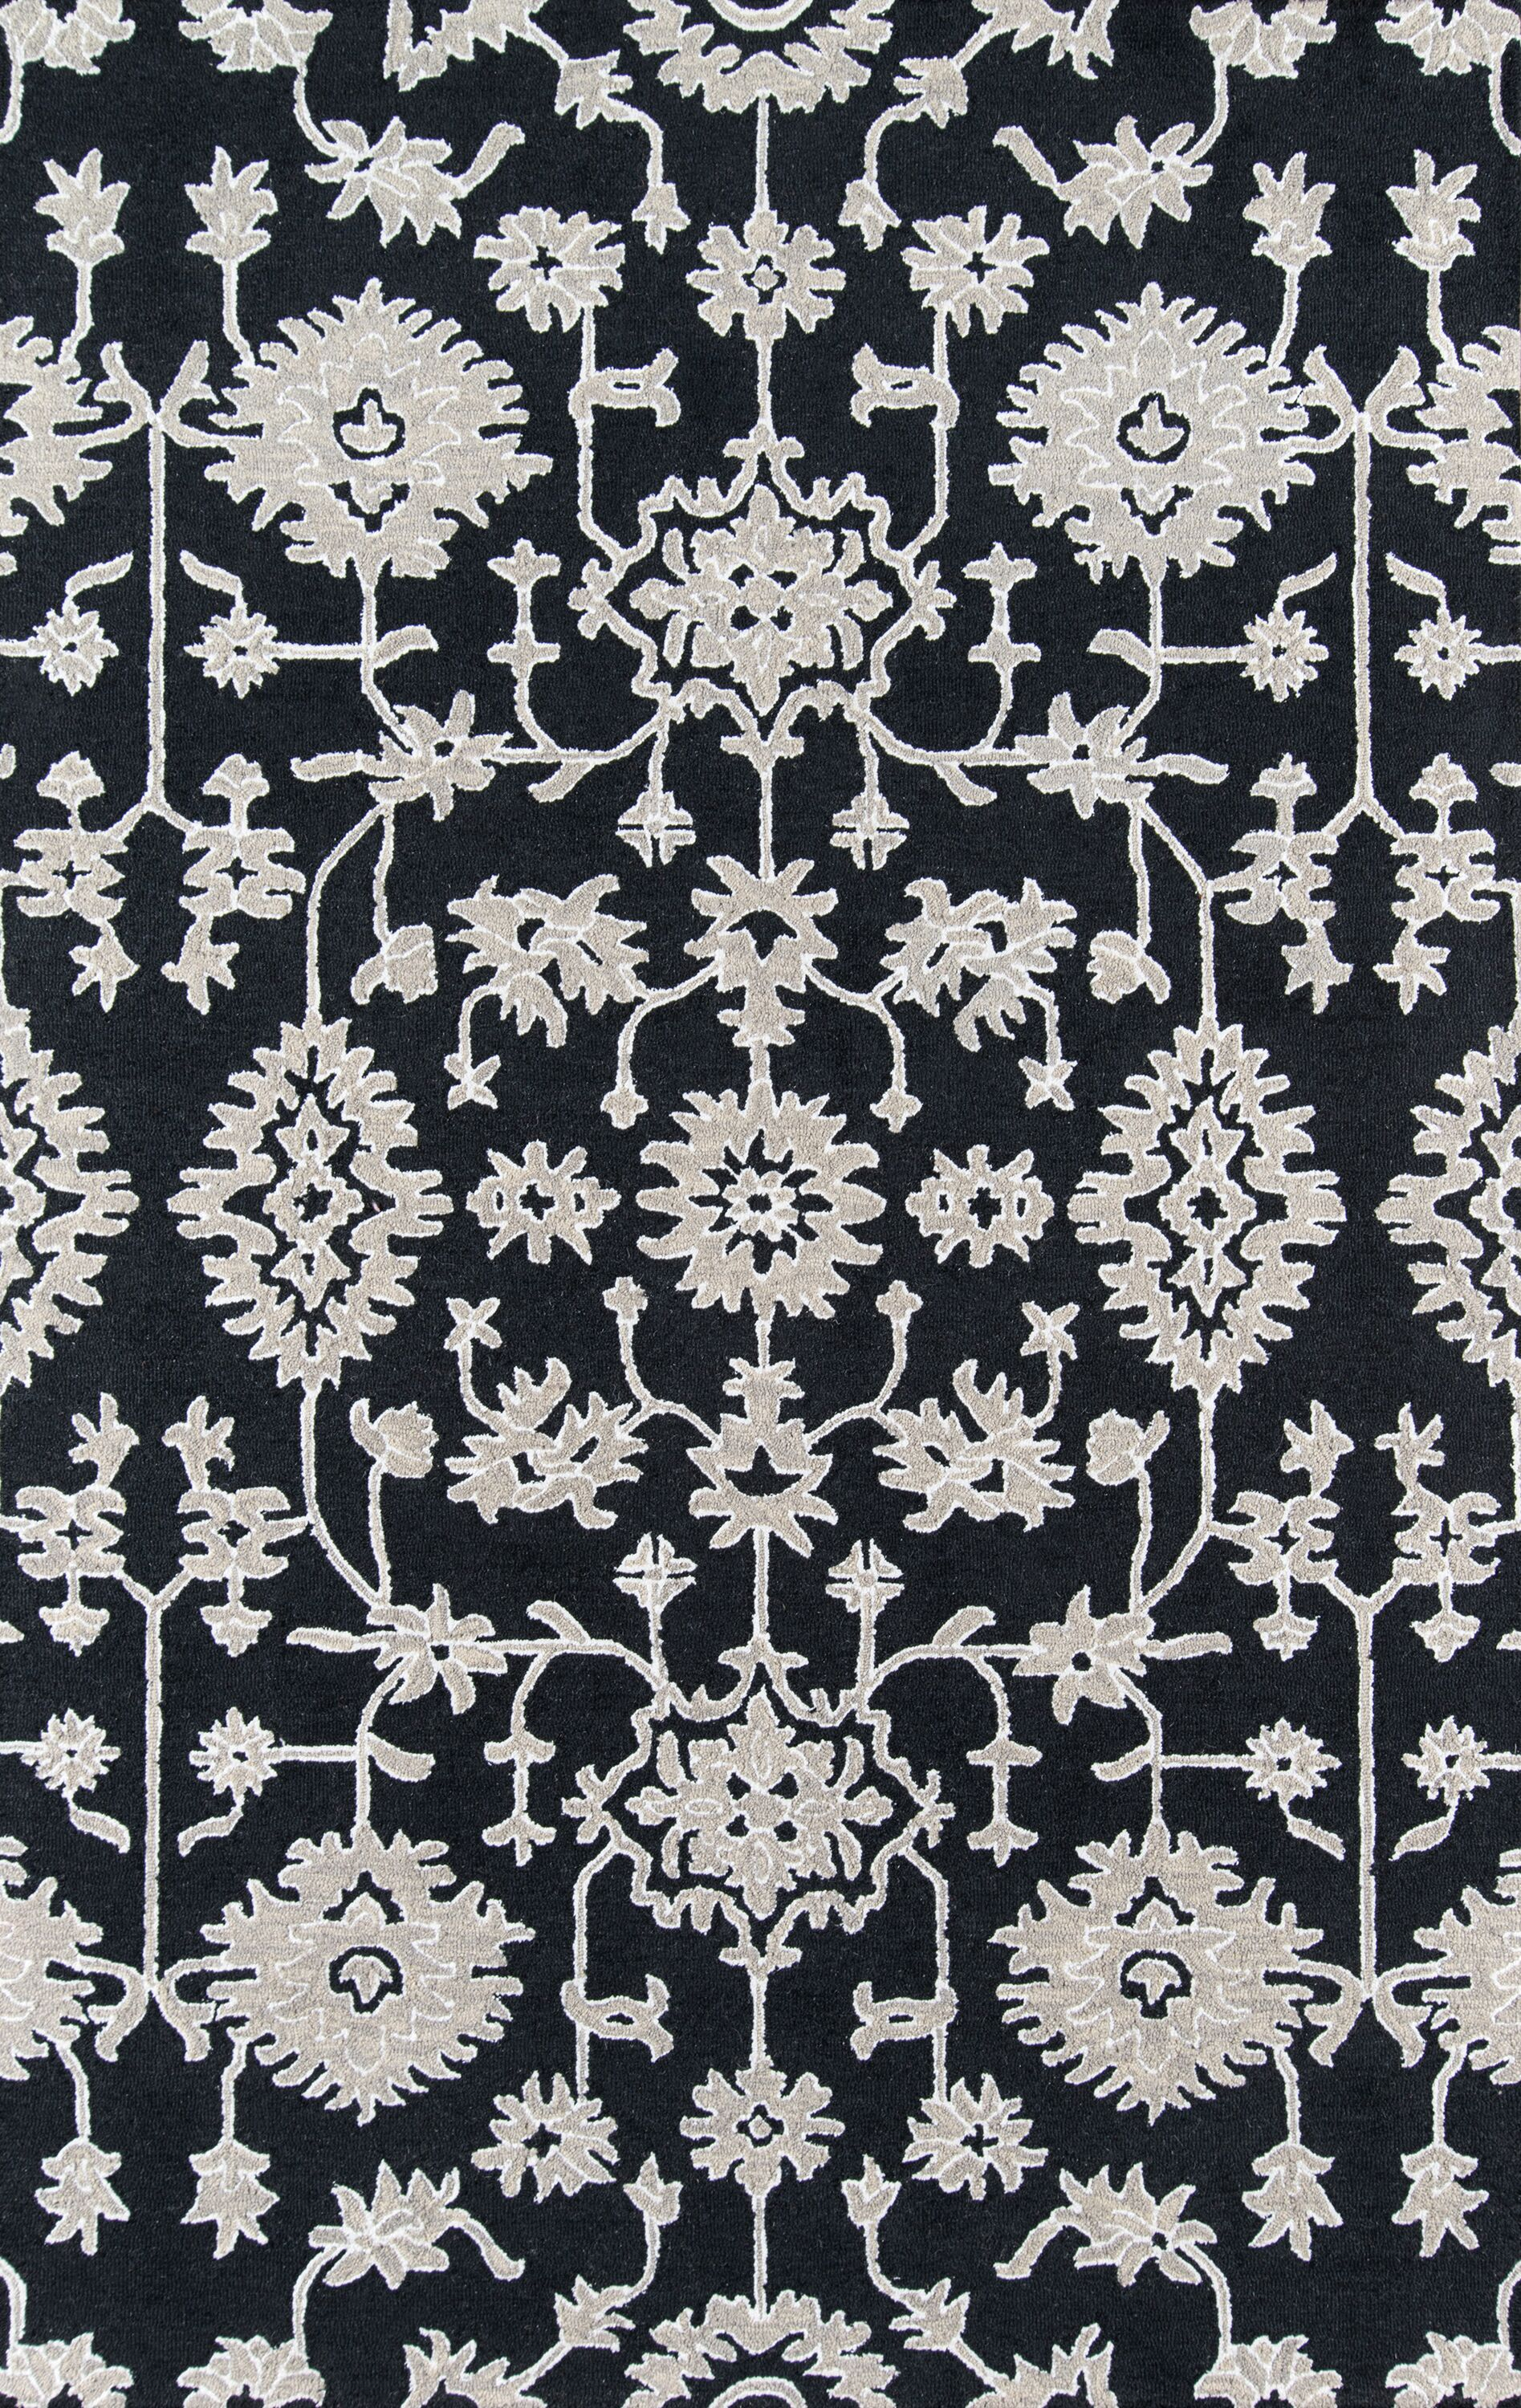 Paisley Hand-Tufted Charcoal Area Rug Rug Size: Rectangle 3' x 5'